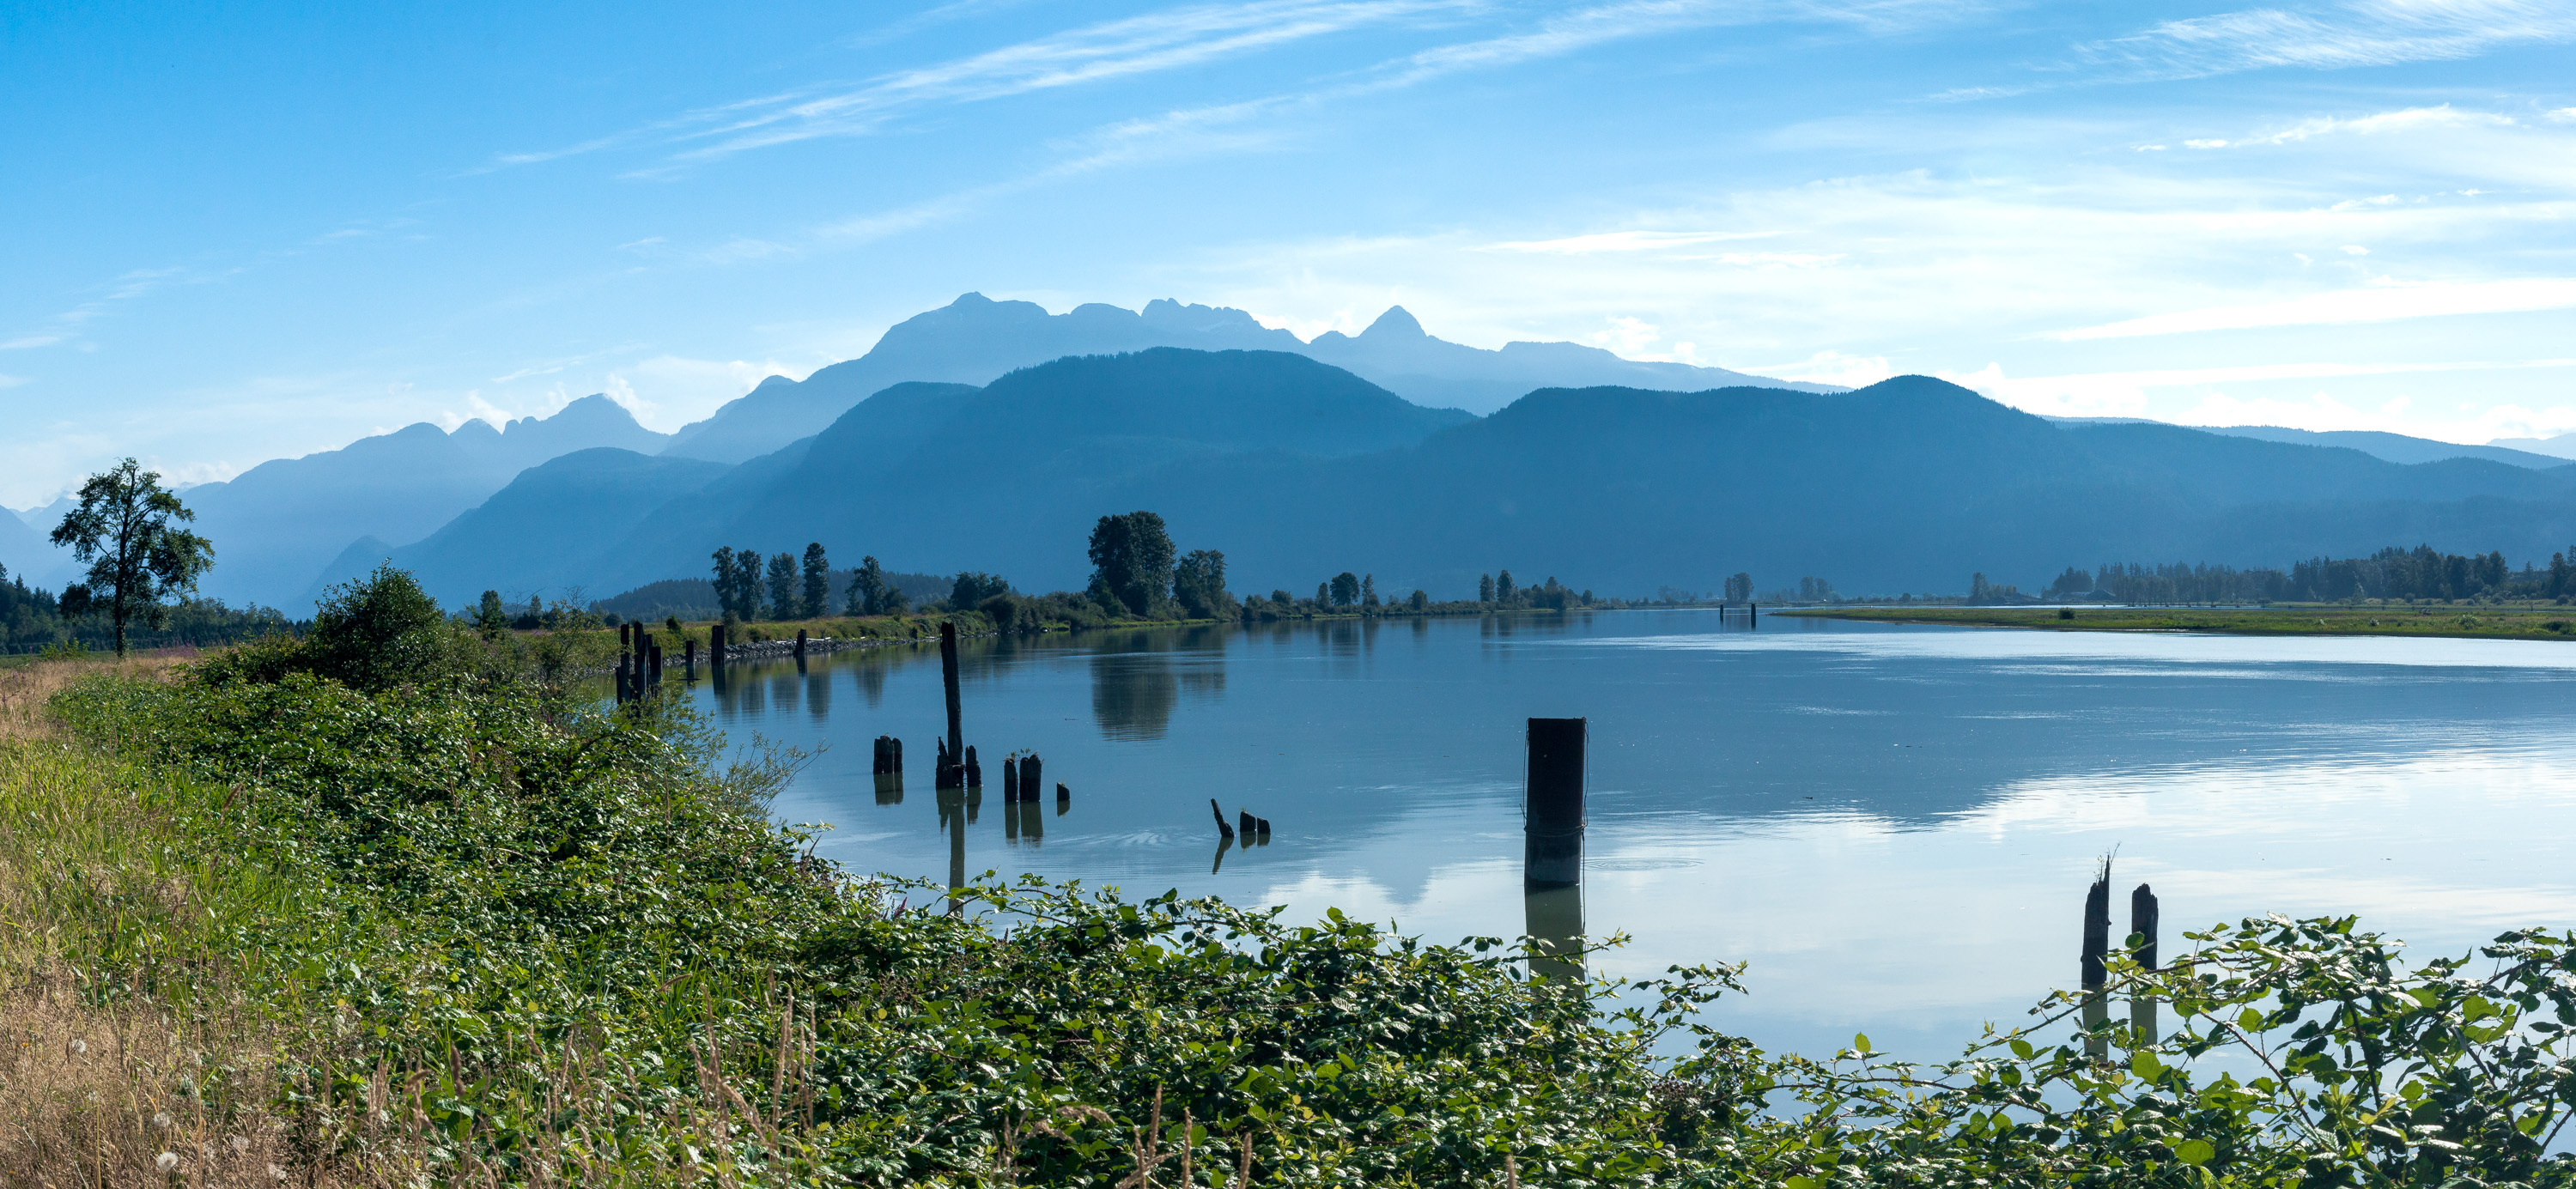 DeBoville Slough and Mts